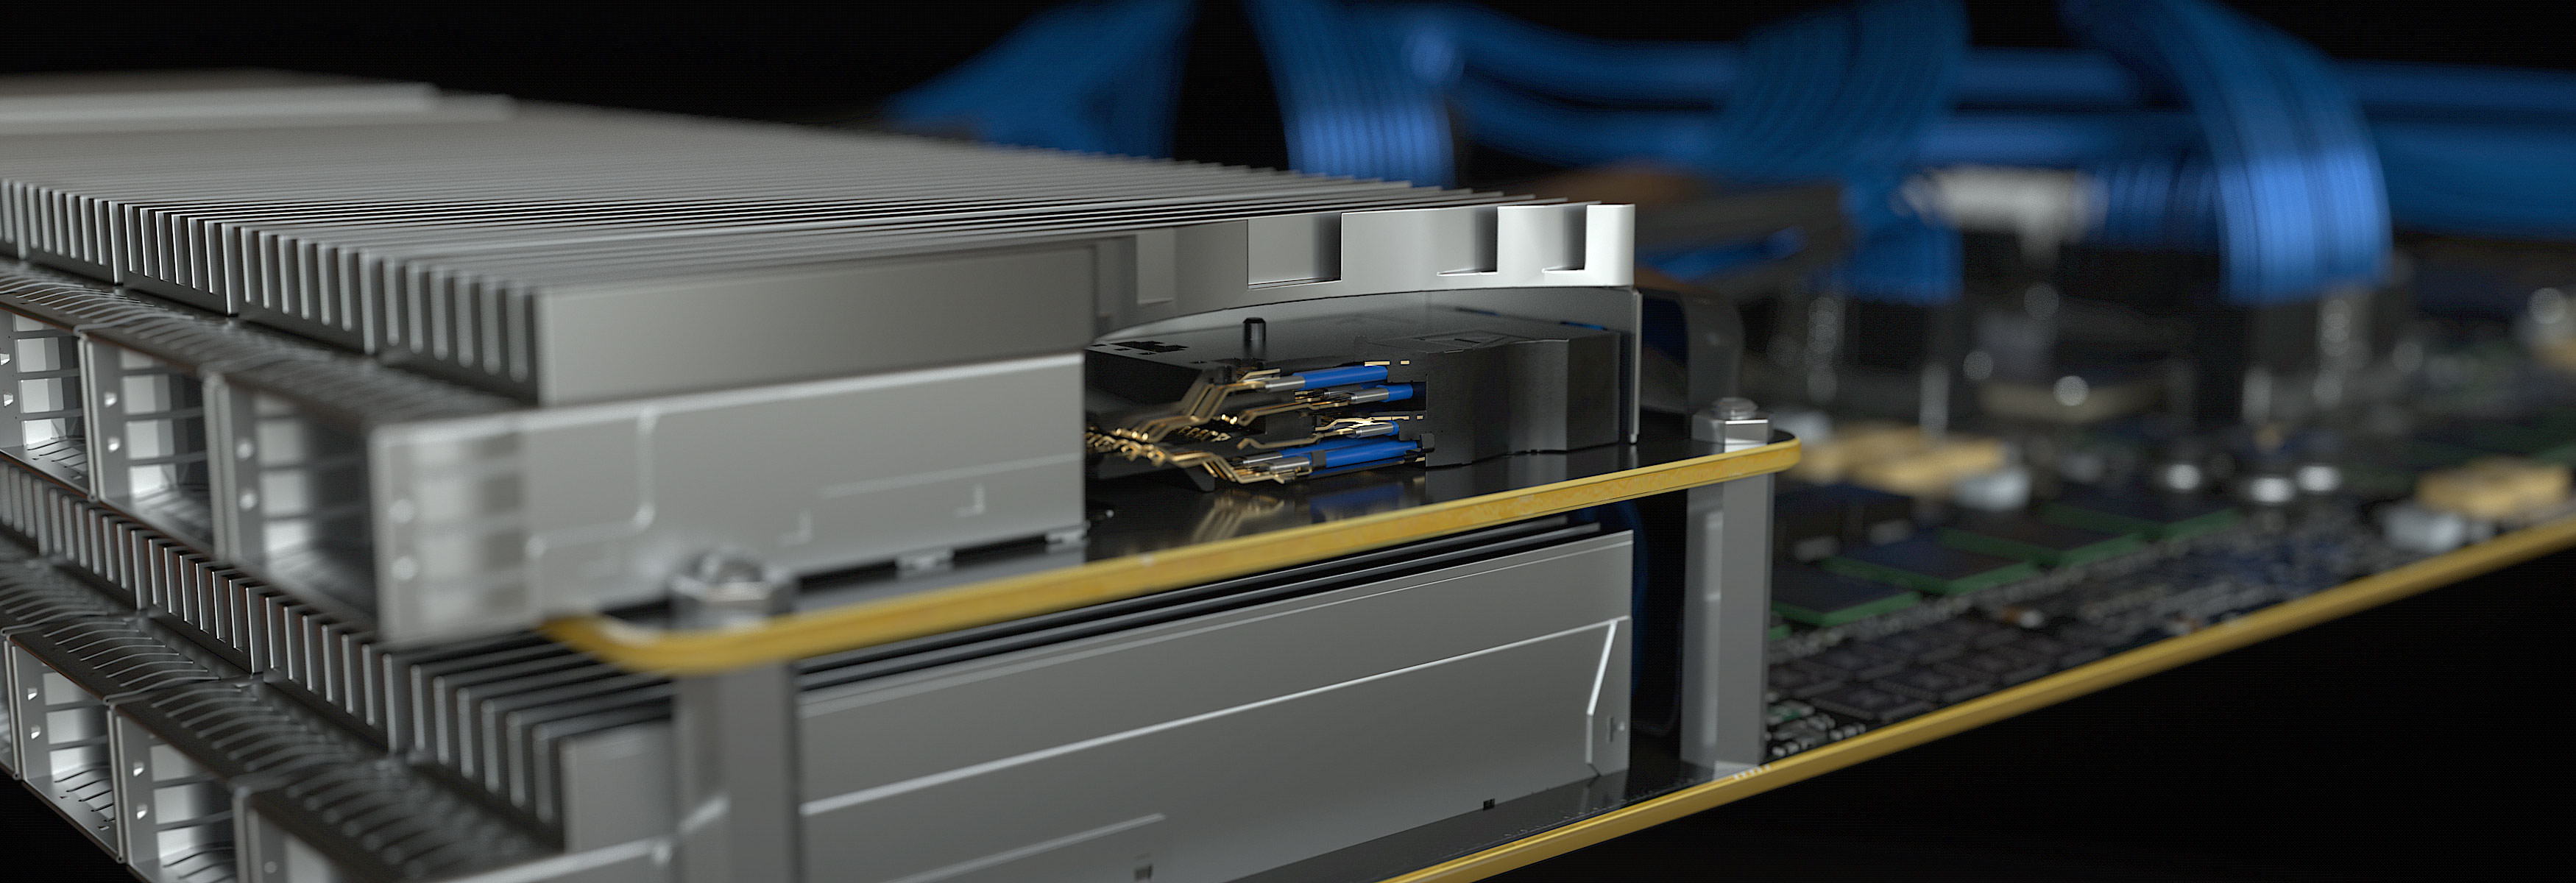 Flyover QSFP28 Cable Systems | Samtec